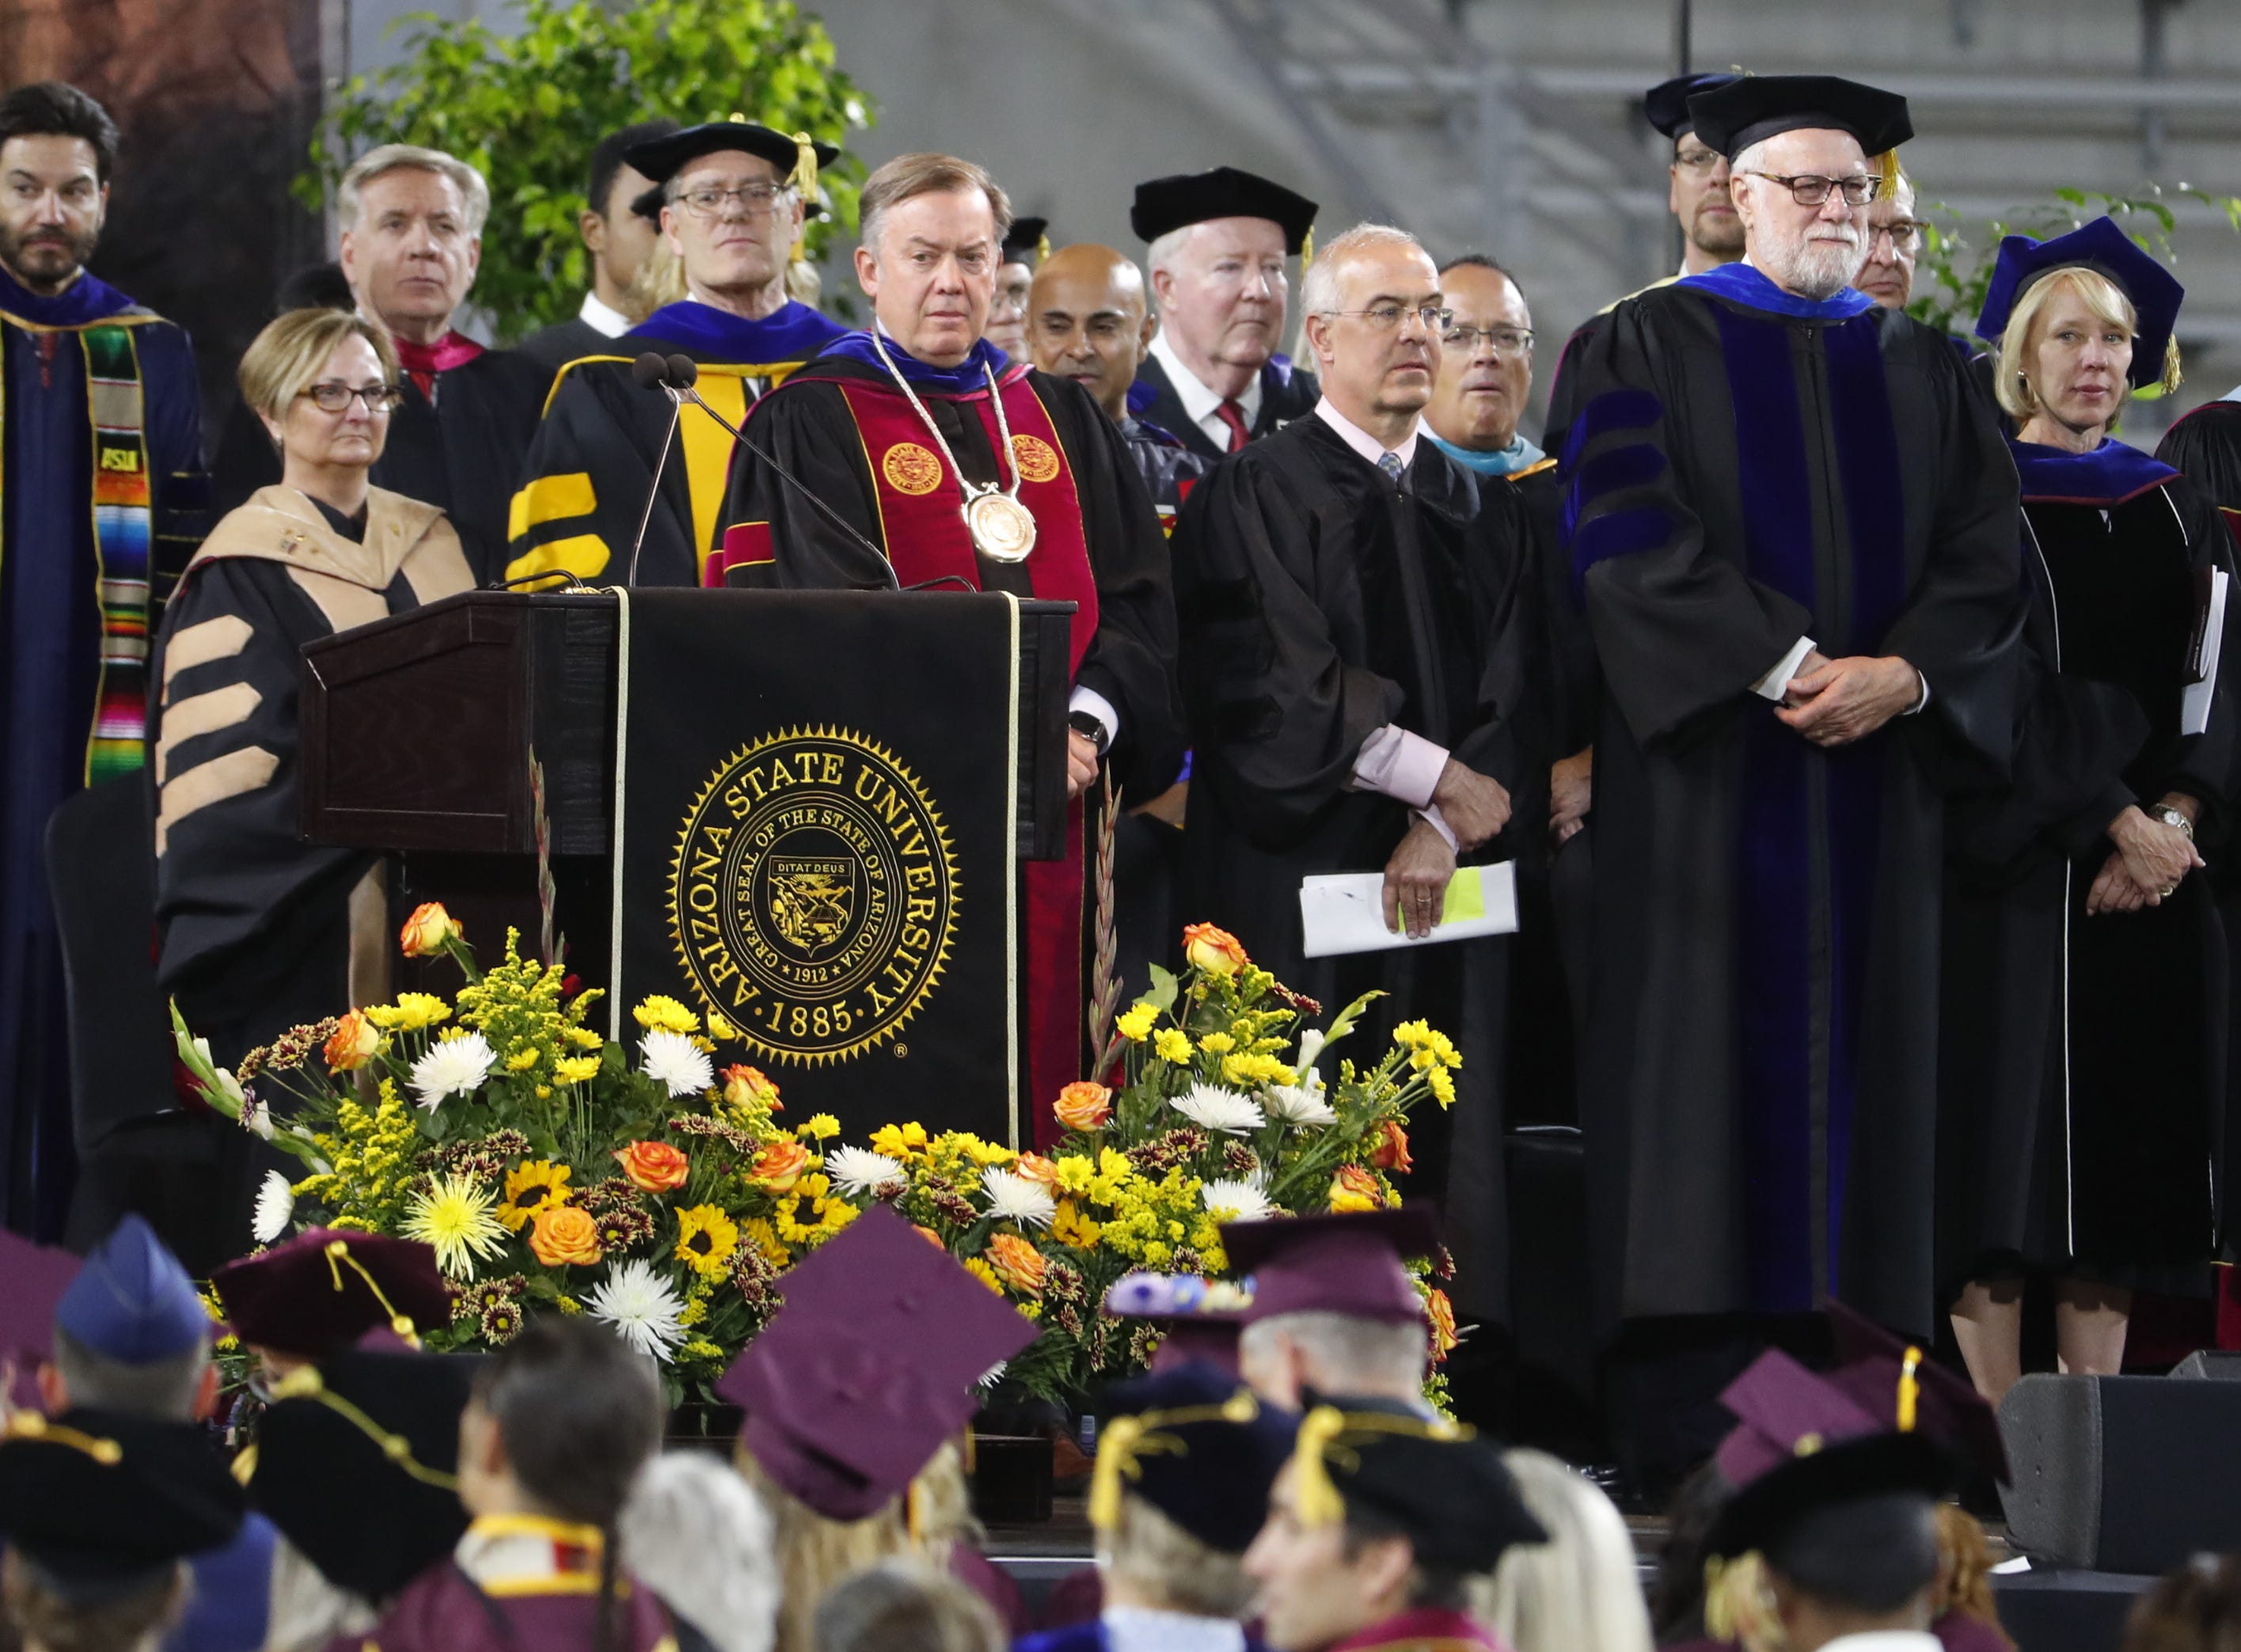 ASU President Michael Crow stands with Reagents during ASU's Undergraduate Commencement at Sun Devil Stadium in Tempe, Ariz. on May 6, 2019.